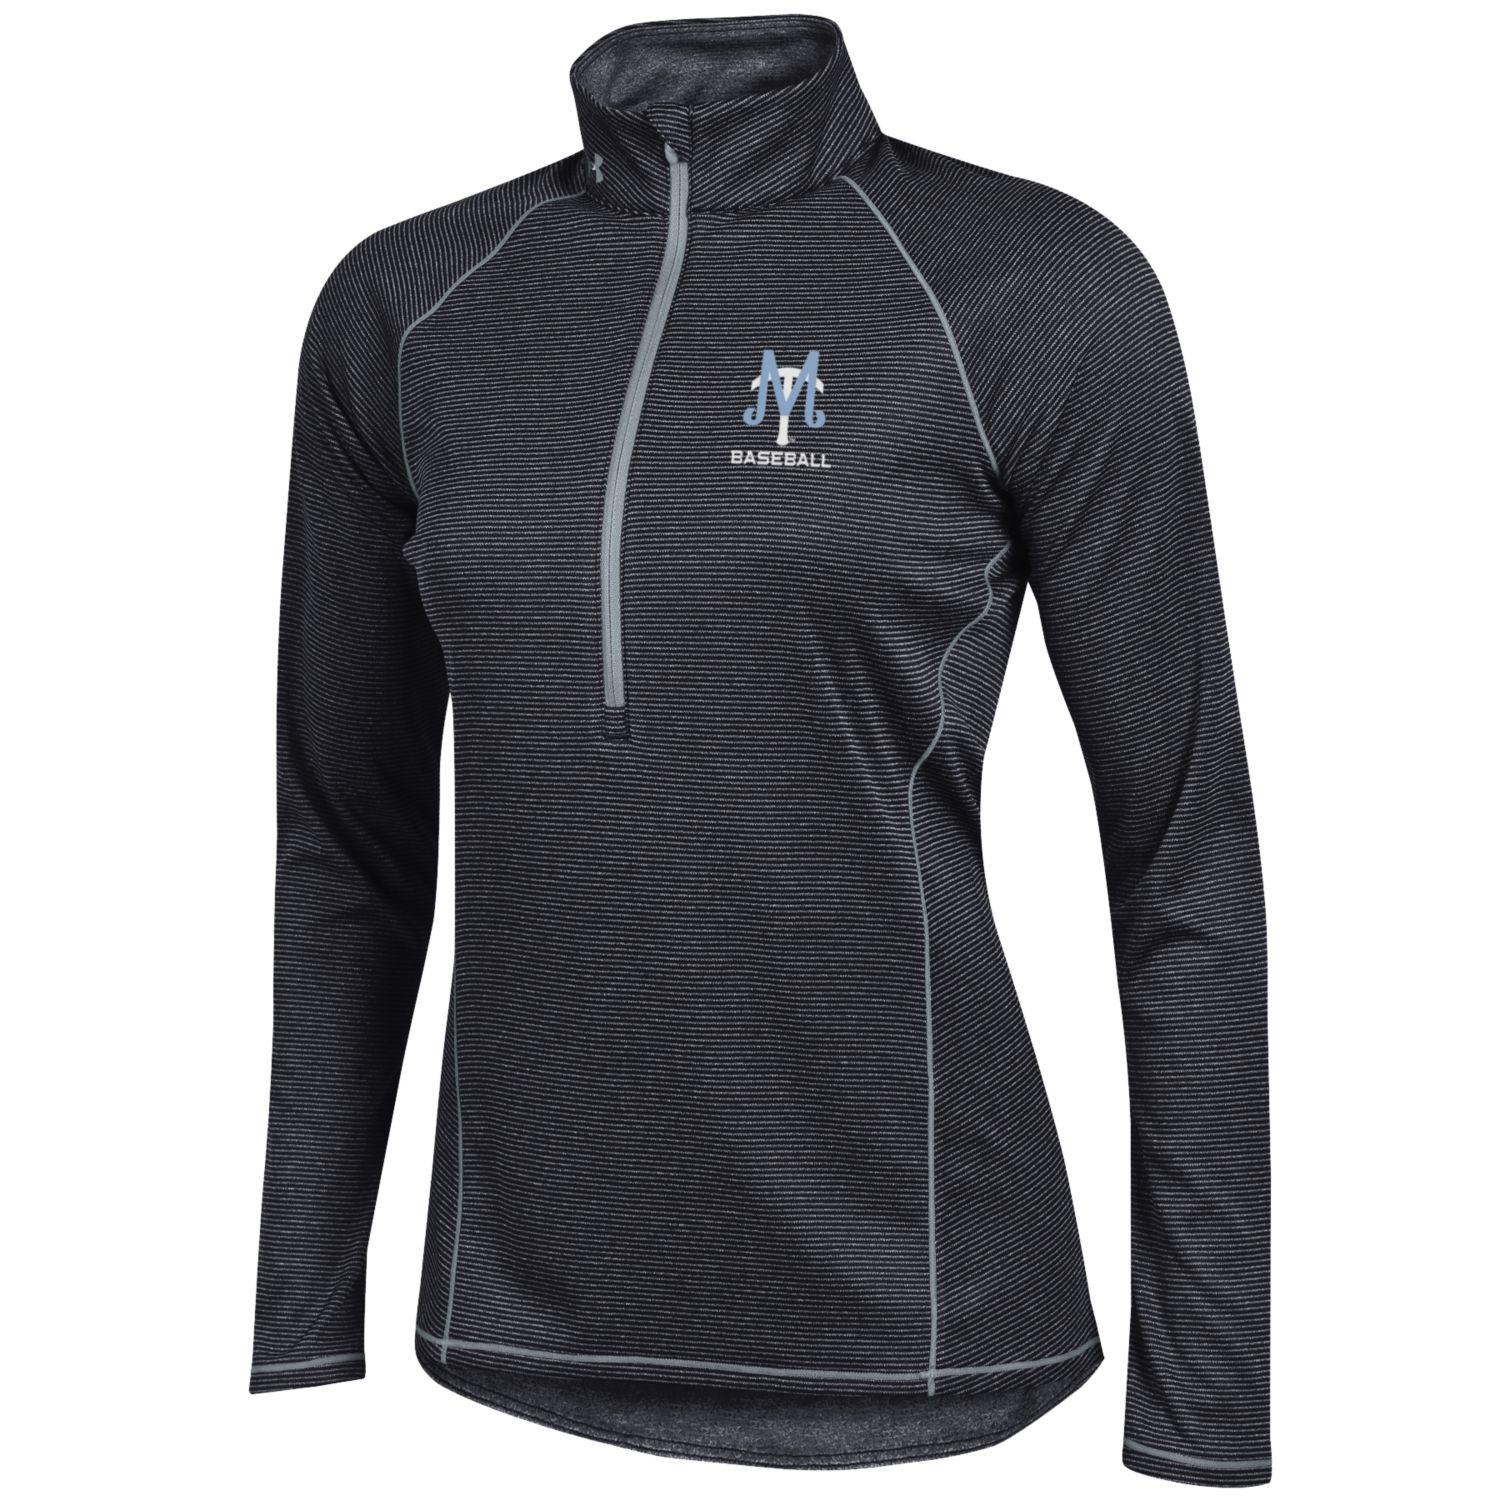 MT Baseball Logo Women's 1/2 Zip Tech